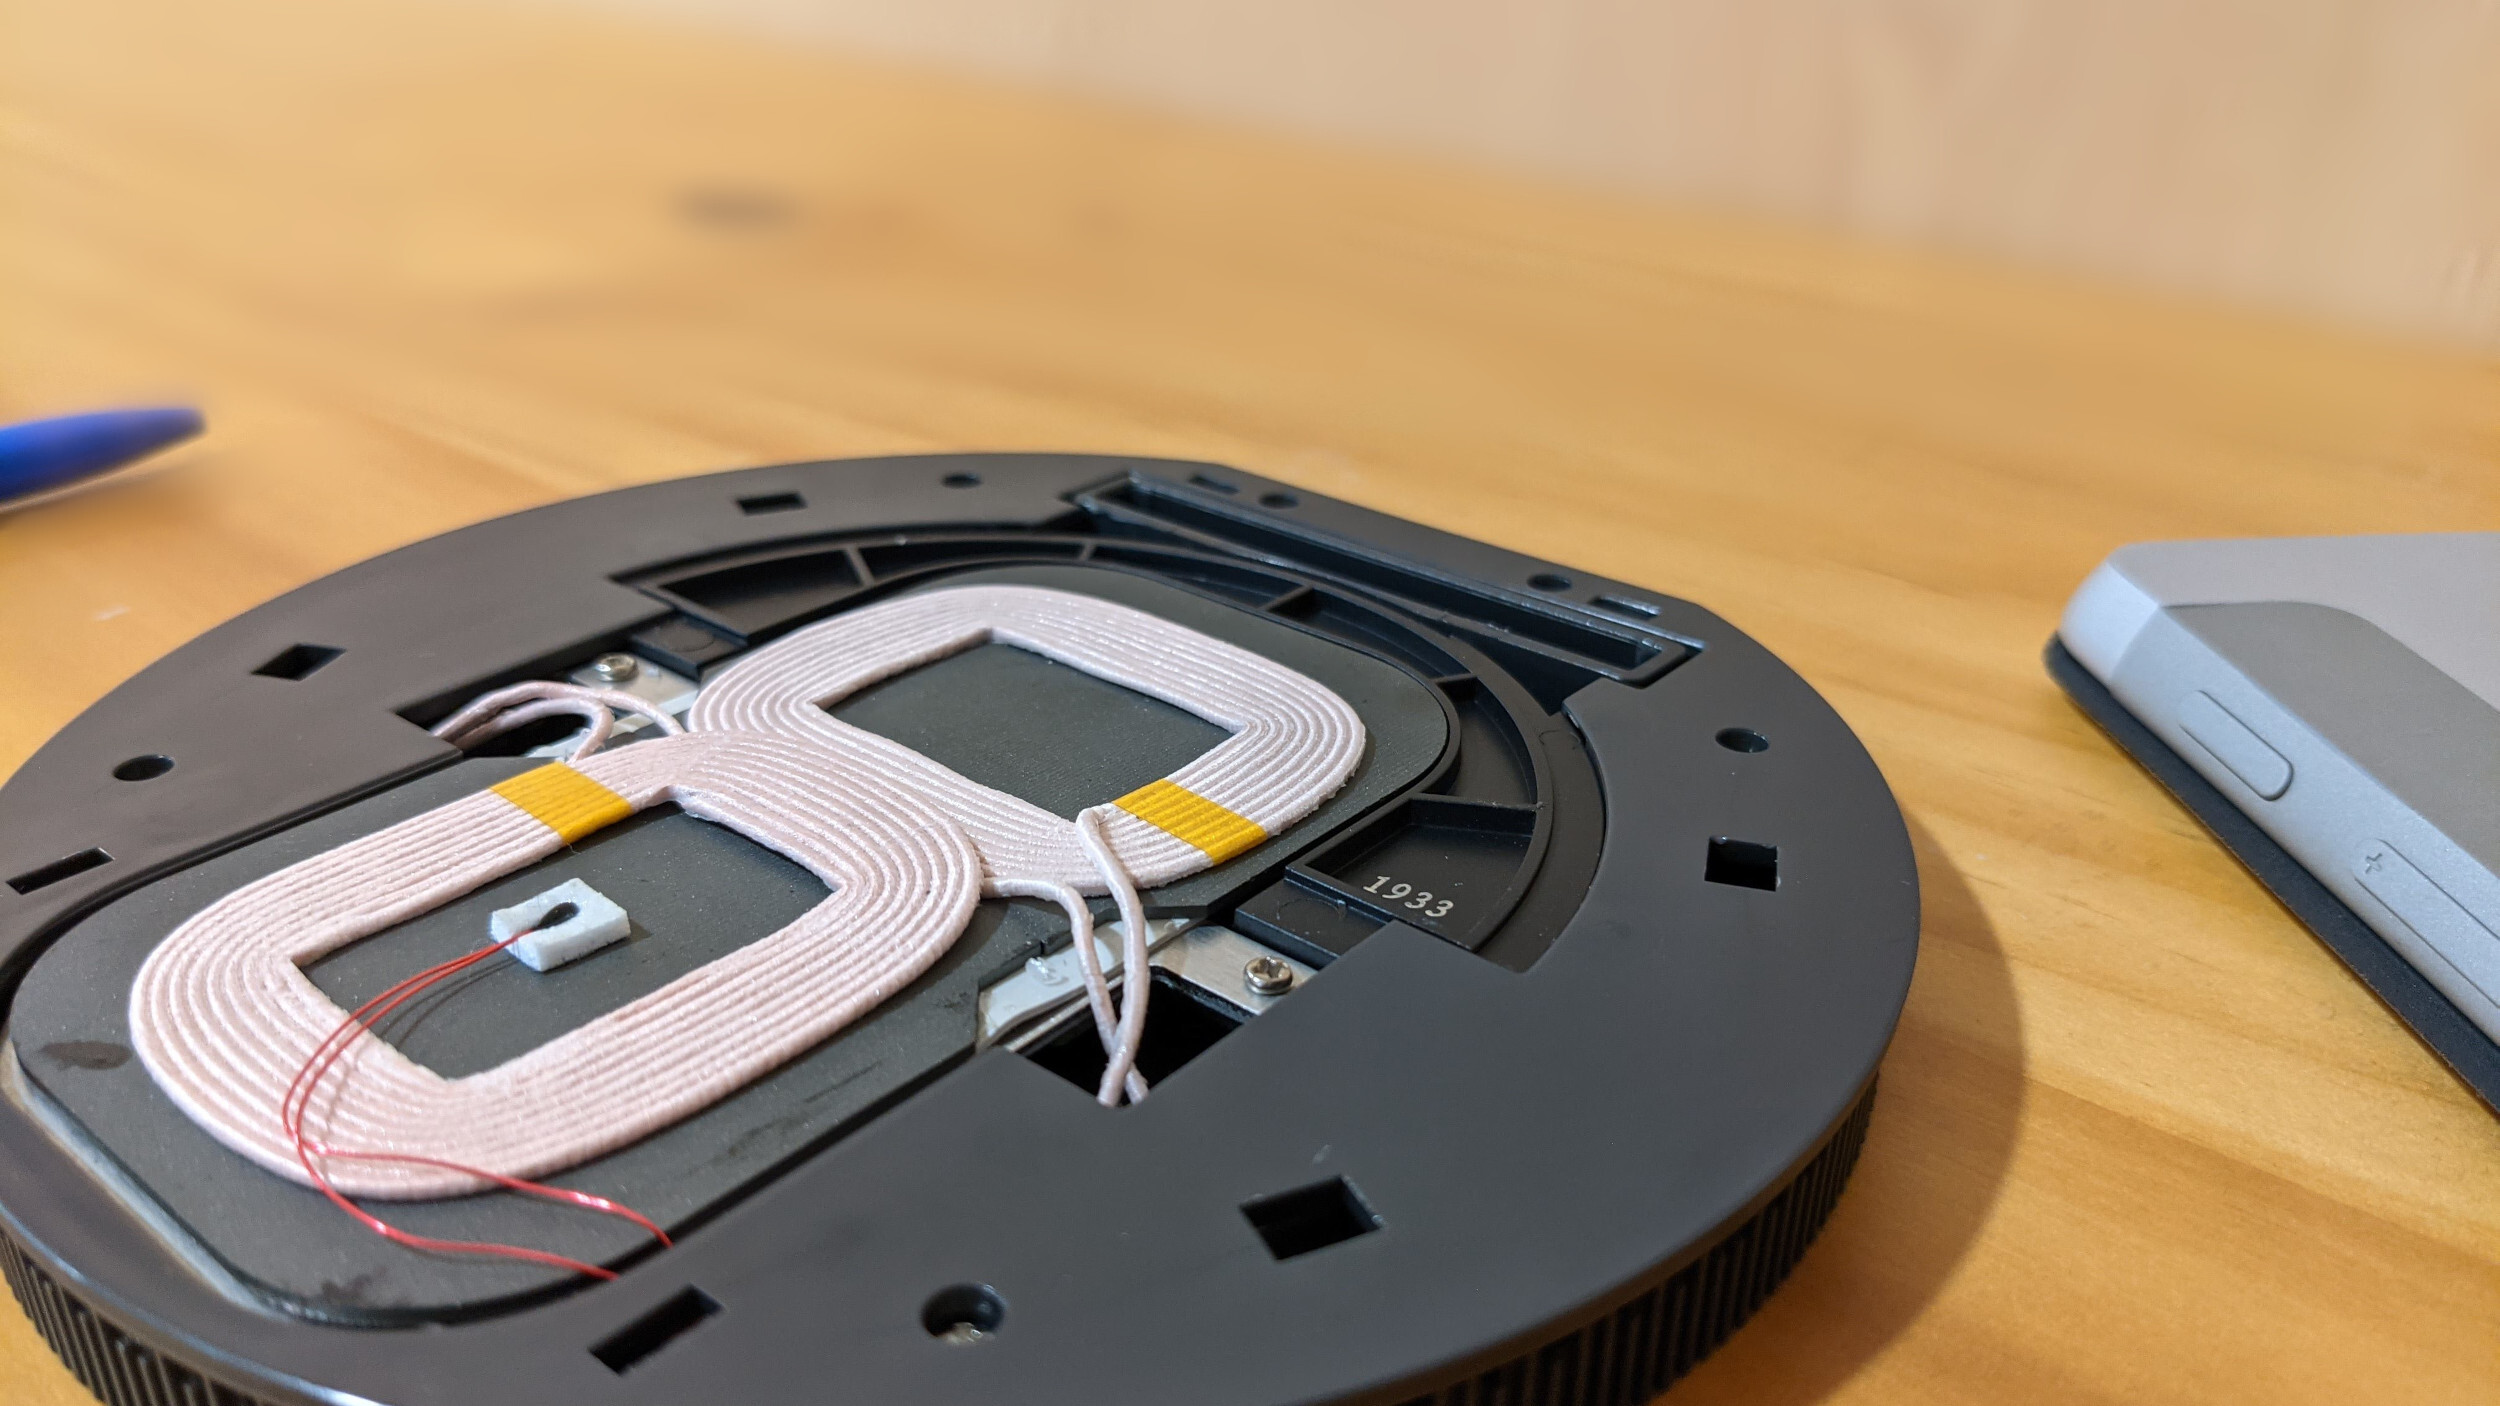 A close-up view of the inside of a multi-coil wireless charger